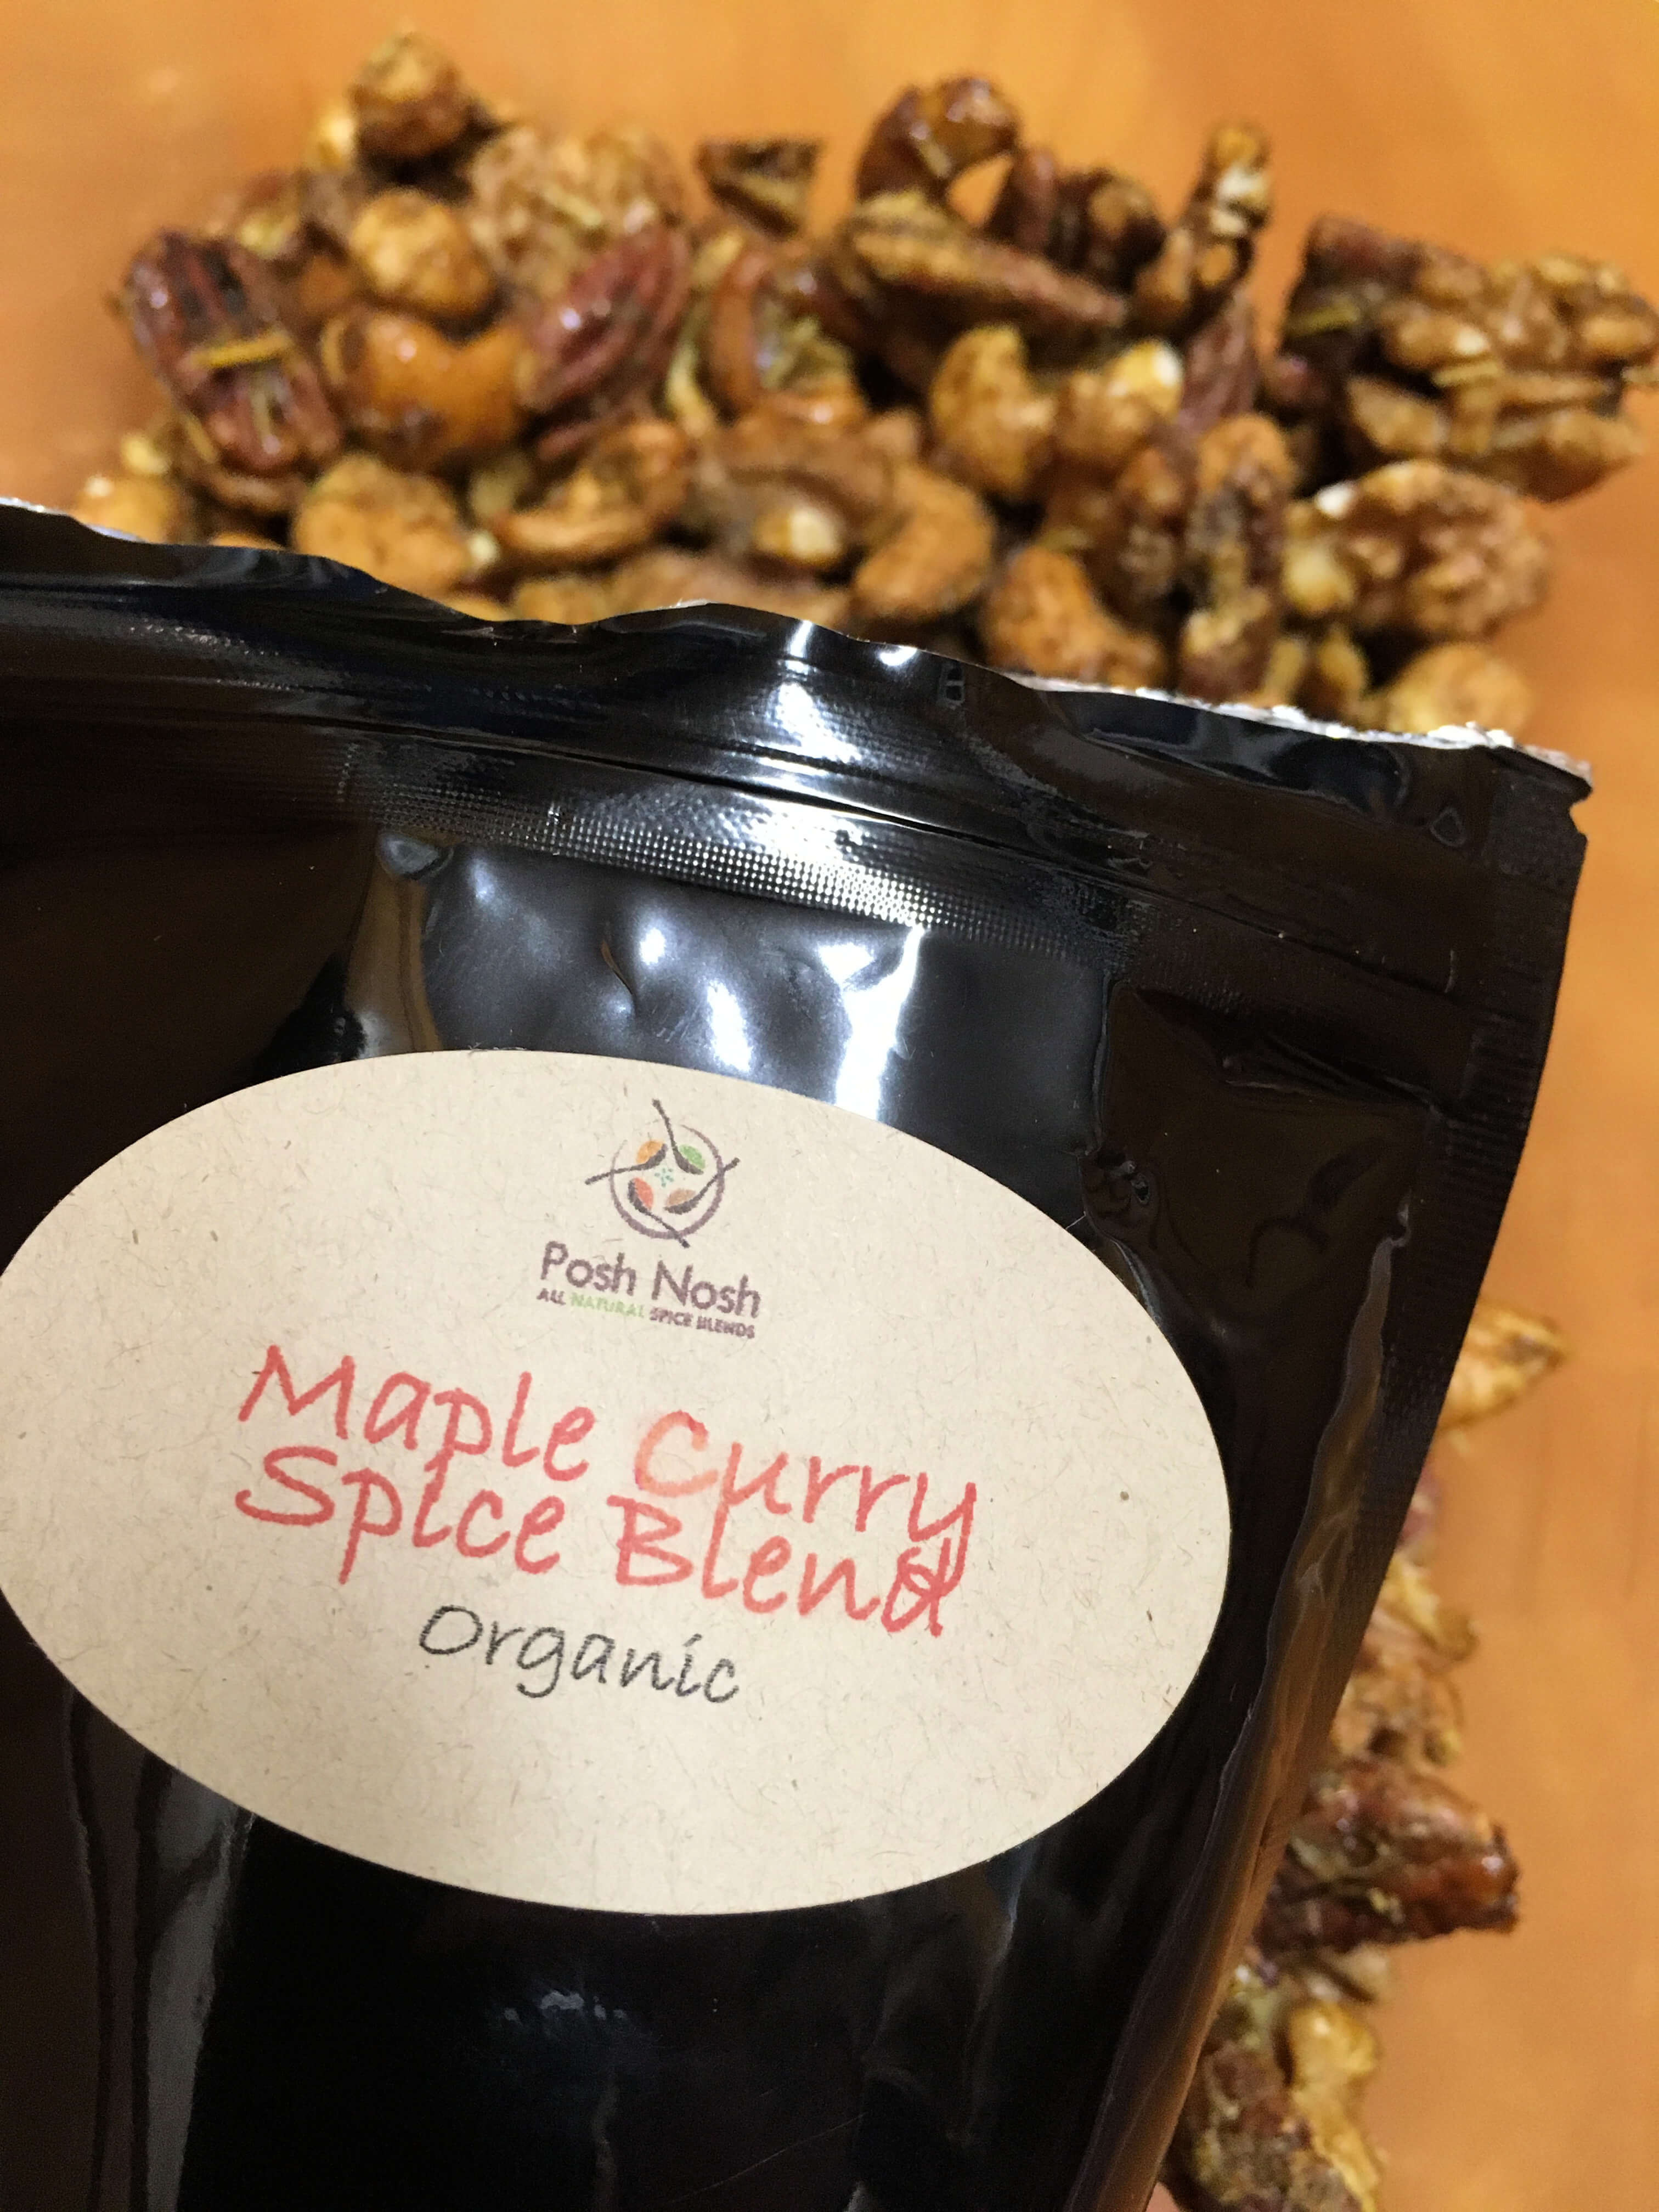 sequoia downtown posh nosh spice blends gifts foodies teachers thank you christmas local moncton riverview dieppe